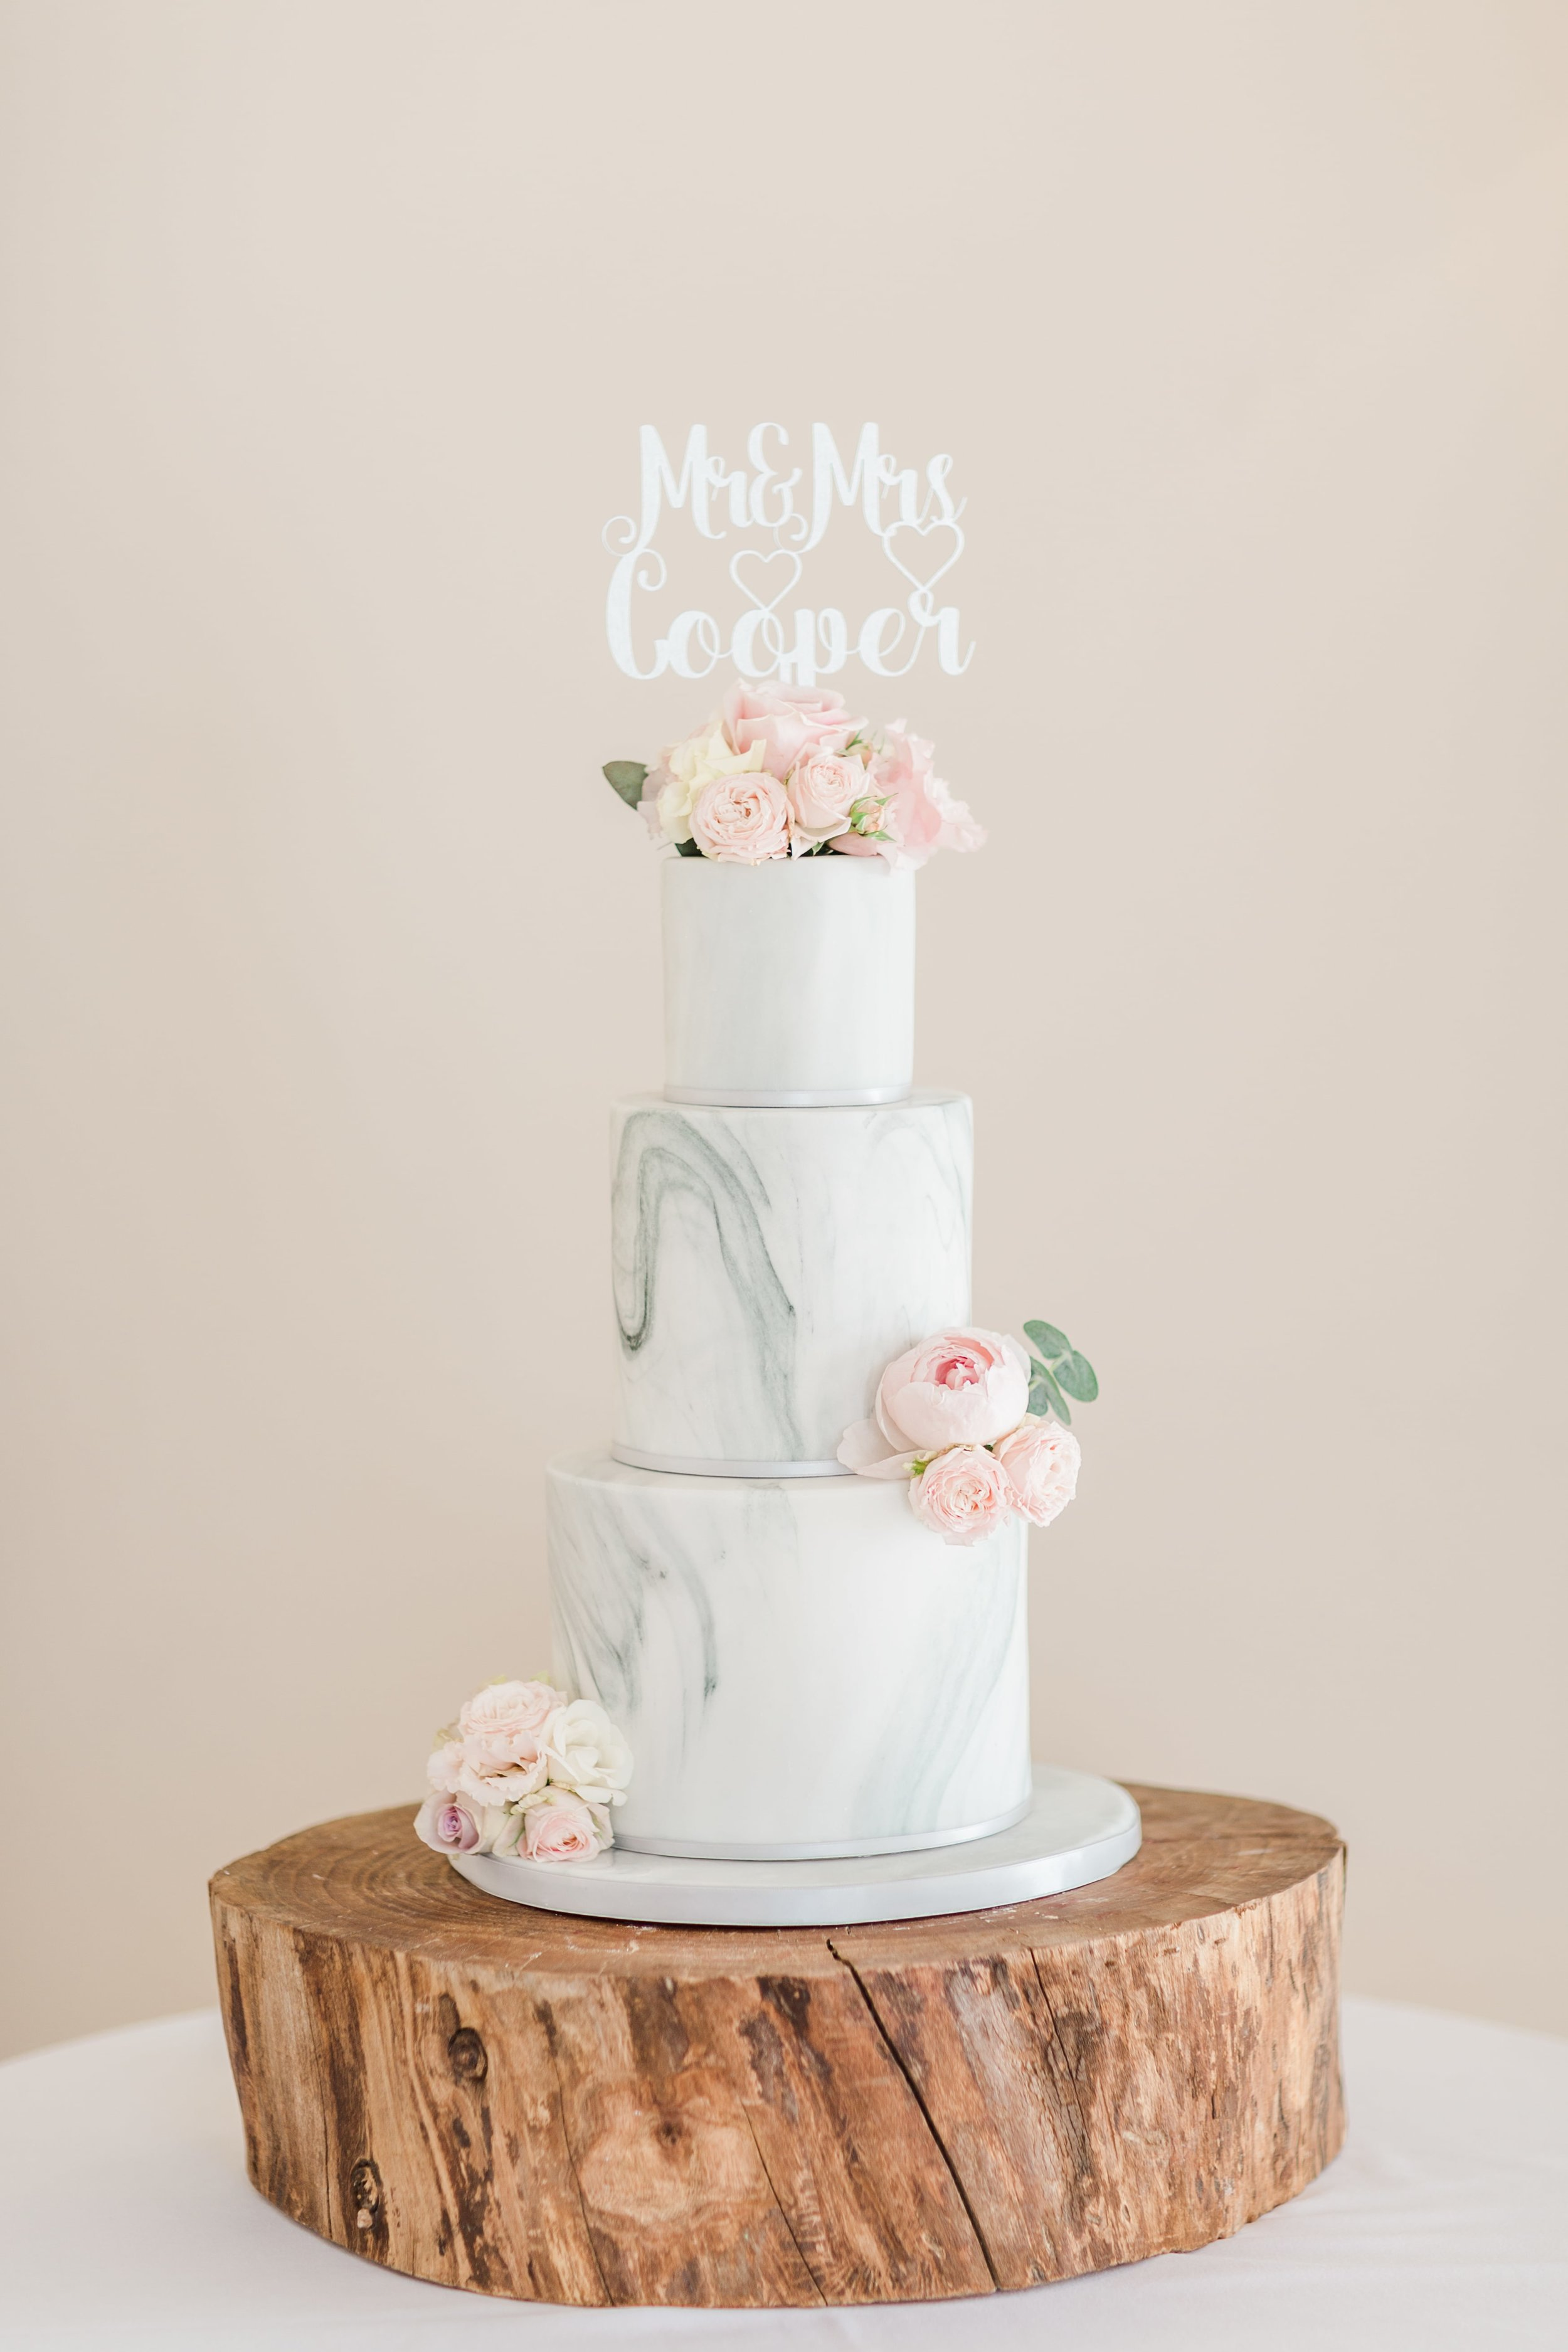 Marble and blush wedding cake by Meadowsweet Cakes, at Bassmead Manor Barns St Neots, photography by Sung Blue Photo